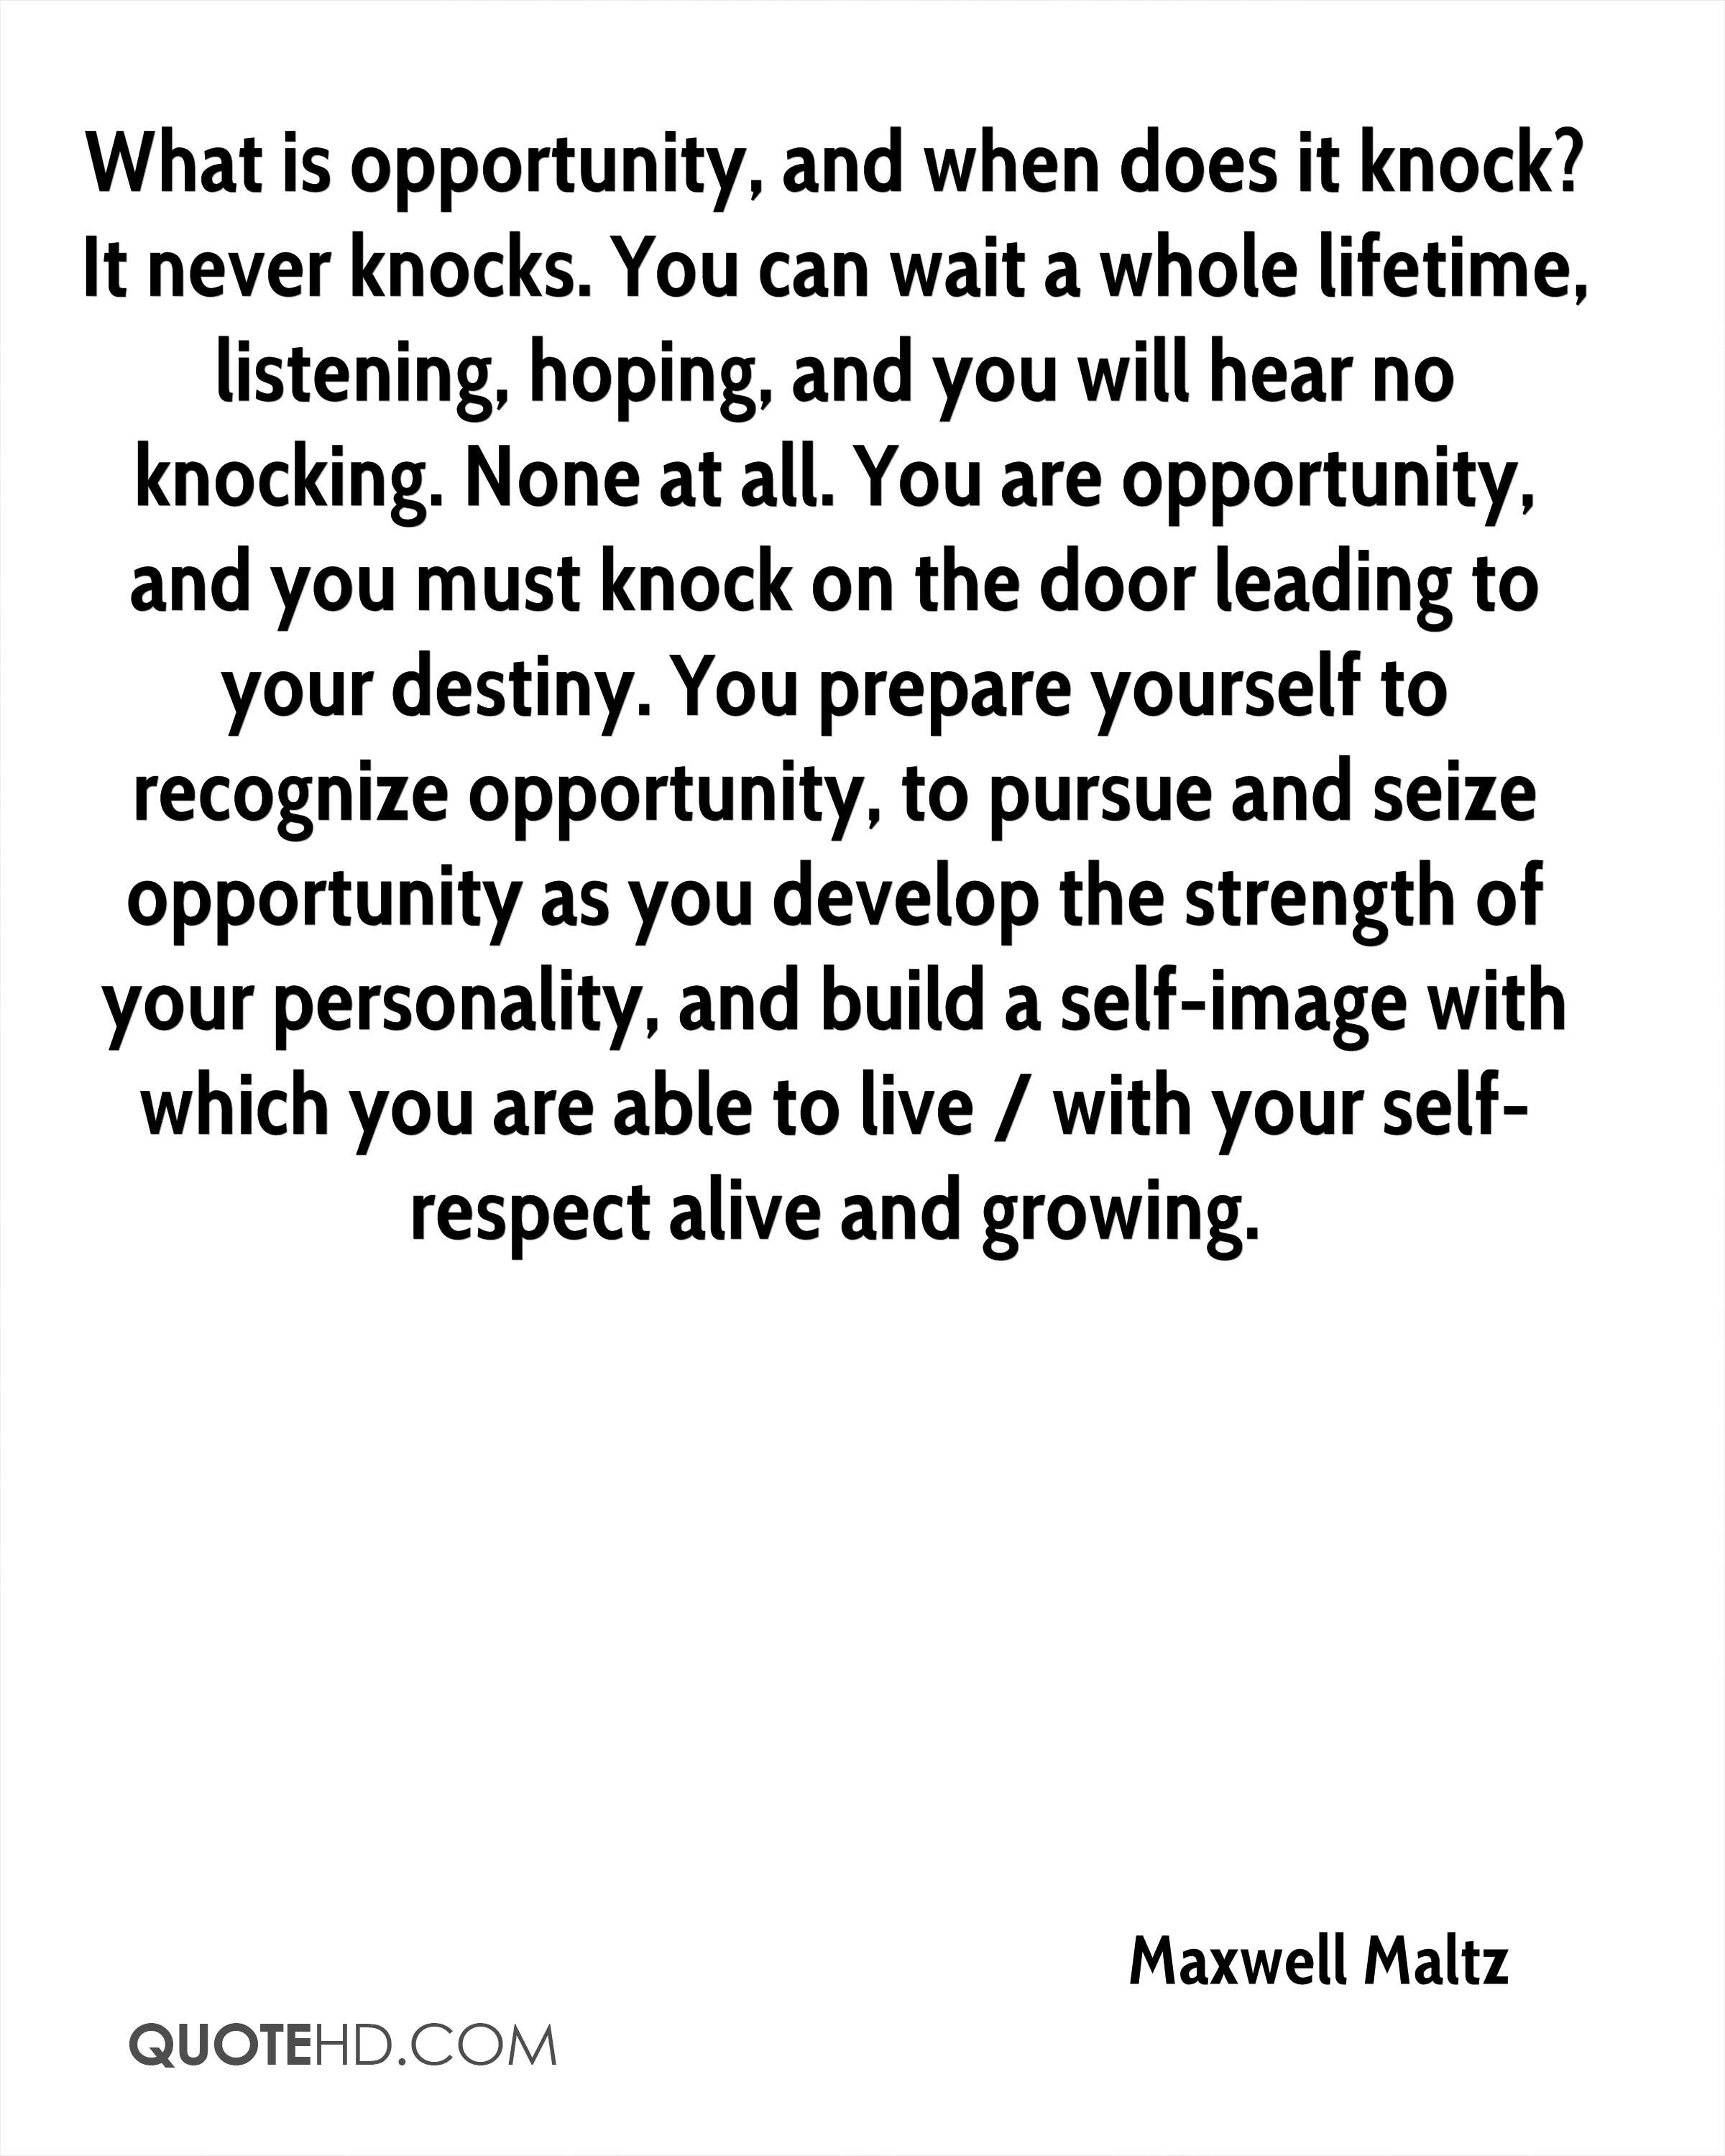 What is opportunity, and when does it knock? It never knocks. You can wait a whole lifetime, listening, hoping, and you will hear no knocking. None at all. You are opportunity, and you must knock on the door leading to your destiny. You prepare yourself to recognize opportunity, to pursue and seize opportunity as you develop the strength of your personality, and build a self-image with which you are able to live / with your self-respect alive and growing.